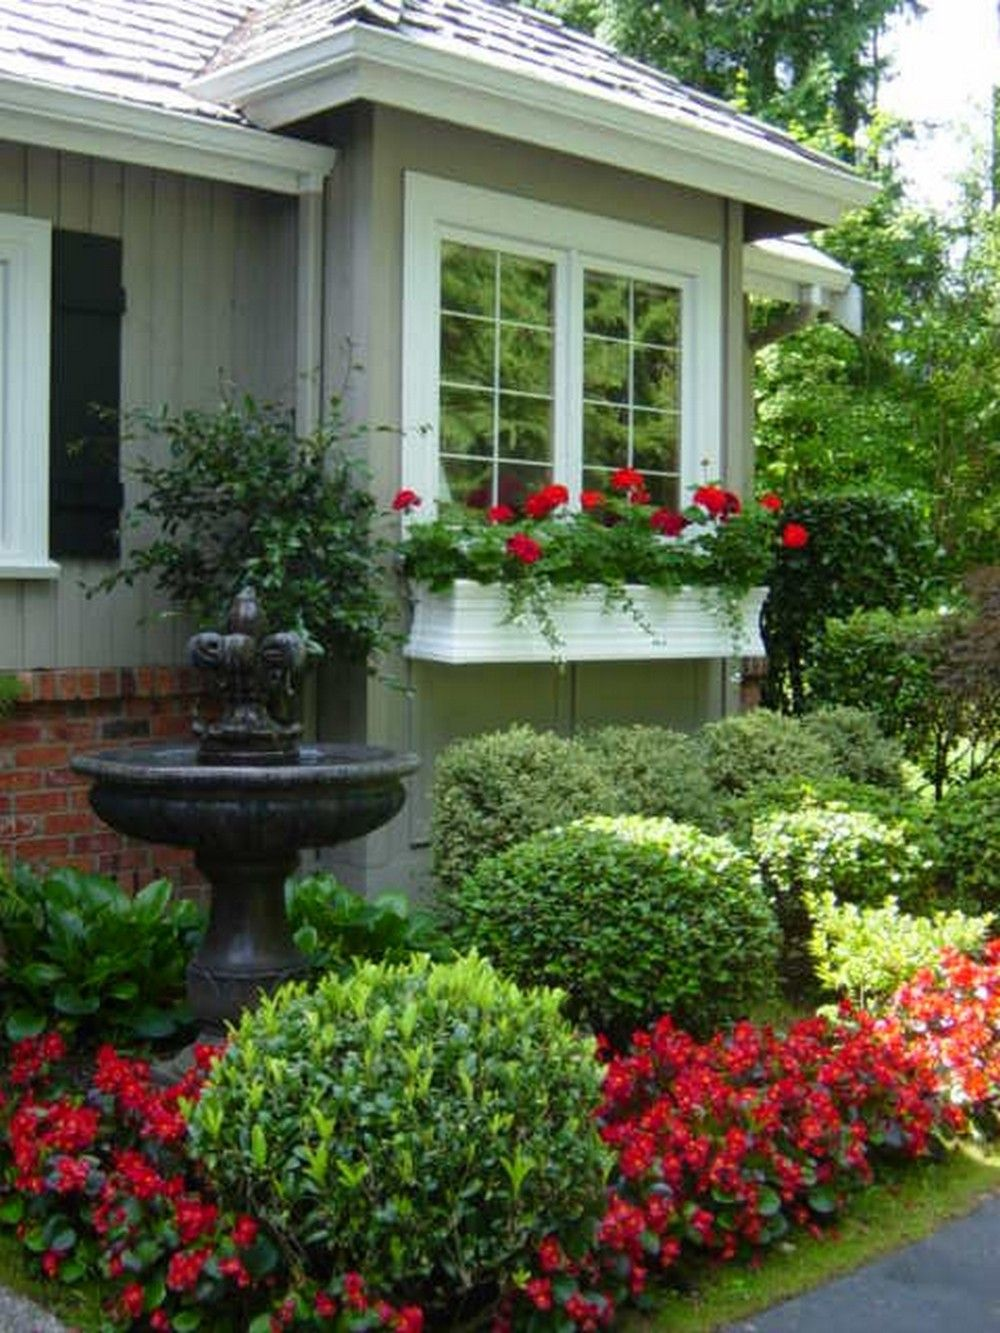 70 Best Front Yard And Backyard Landscaping Ideas: 130 Simple, Fresh And Beautiful Front Yard Landscaping Ideas